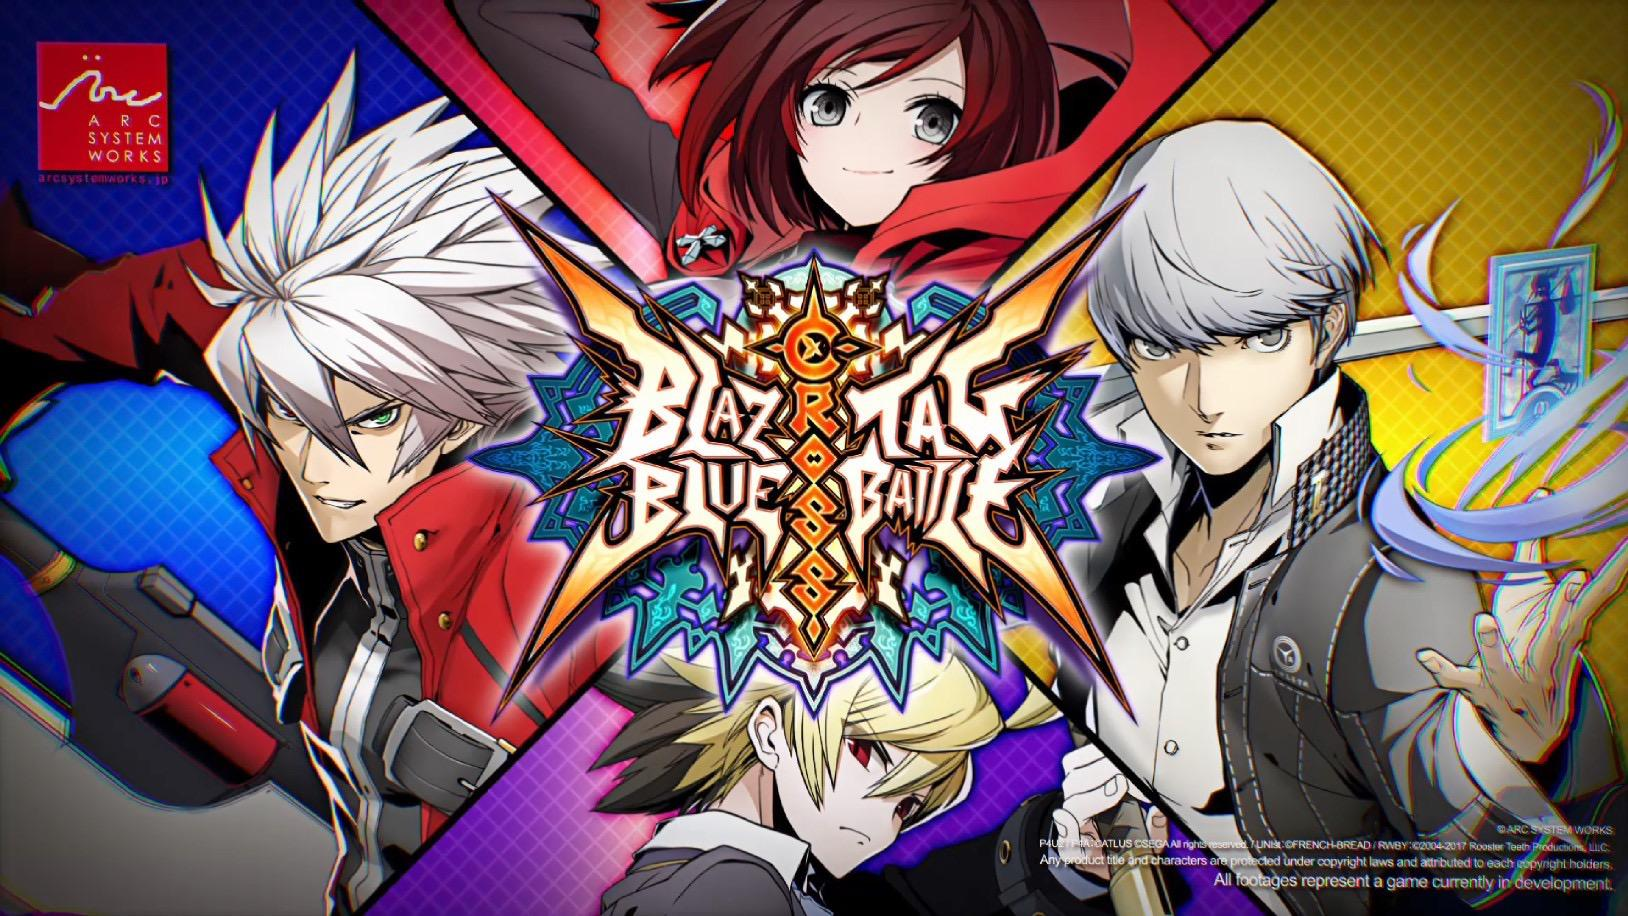 BlazBlue Cross Tag Battle stars Persona and Under Night In-Birth characters